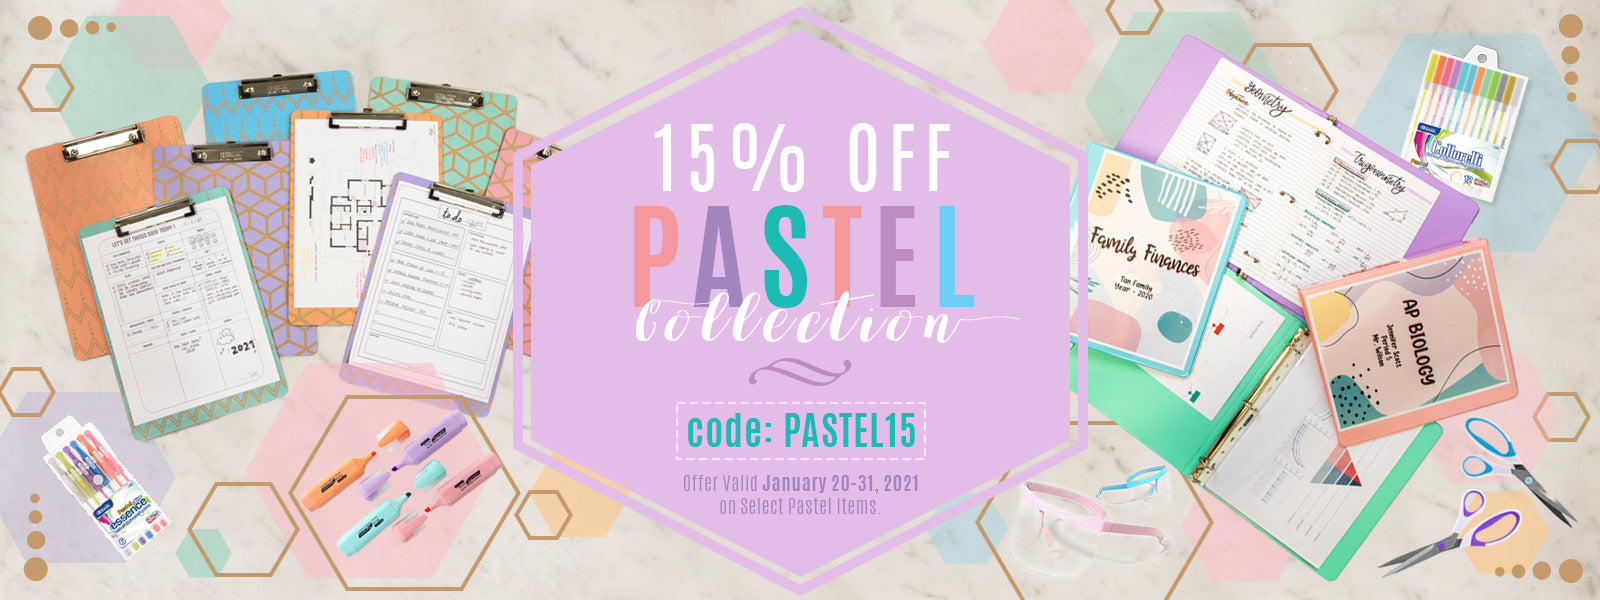 Pastel stationary collection 15% off sales